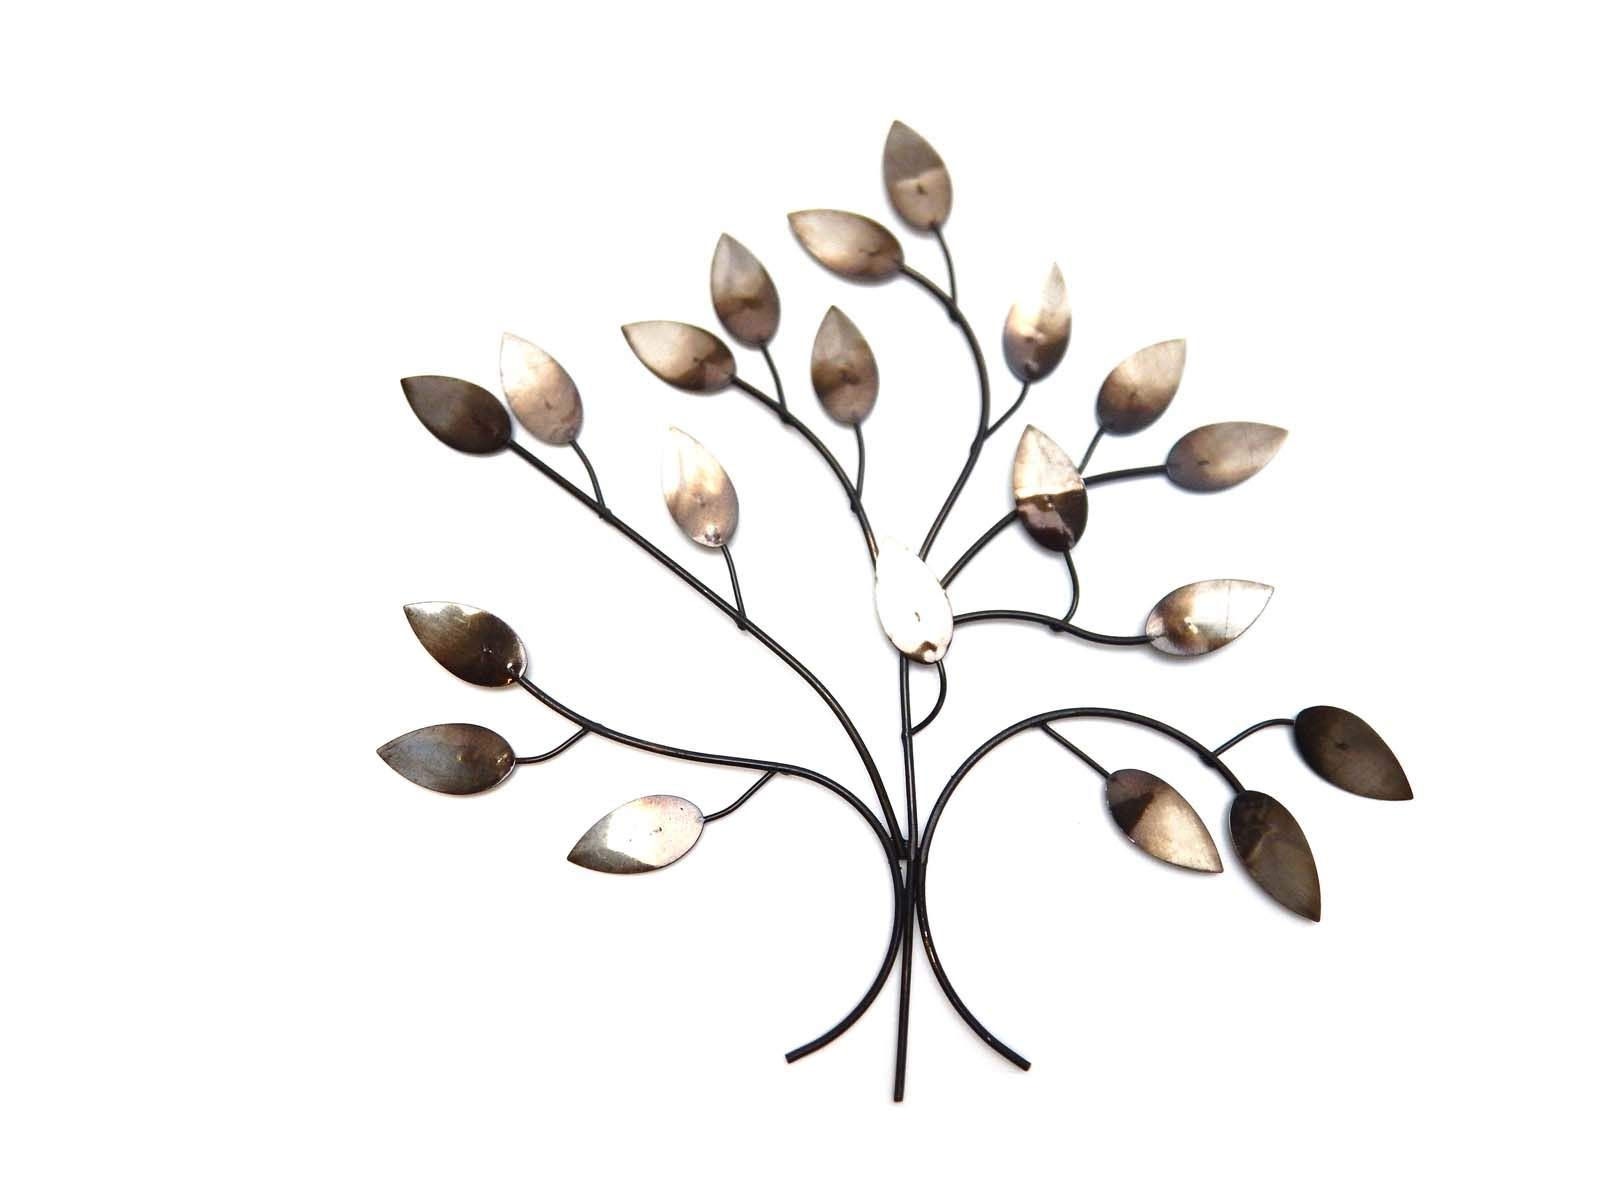 Sk Contemporary Metal Wall Art Antique Silver Tree Branch Buy Online In Guernsey At Guernsey Desertcart Com Productid 158022268